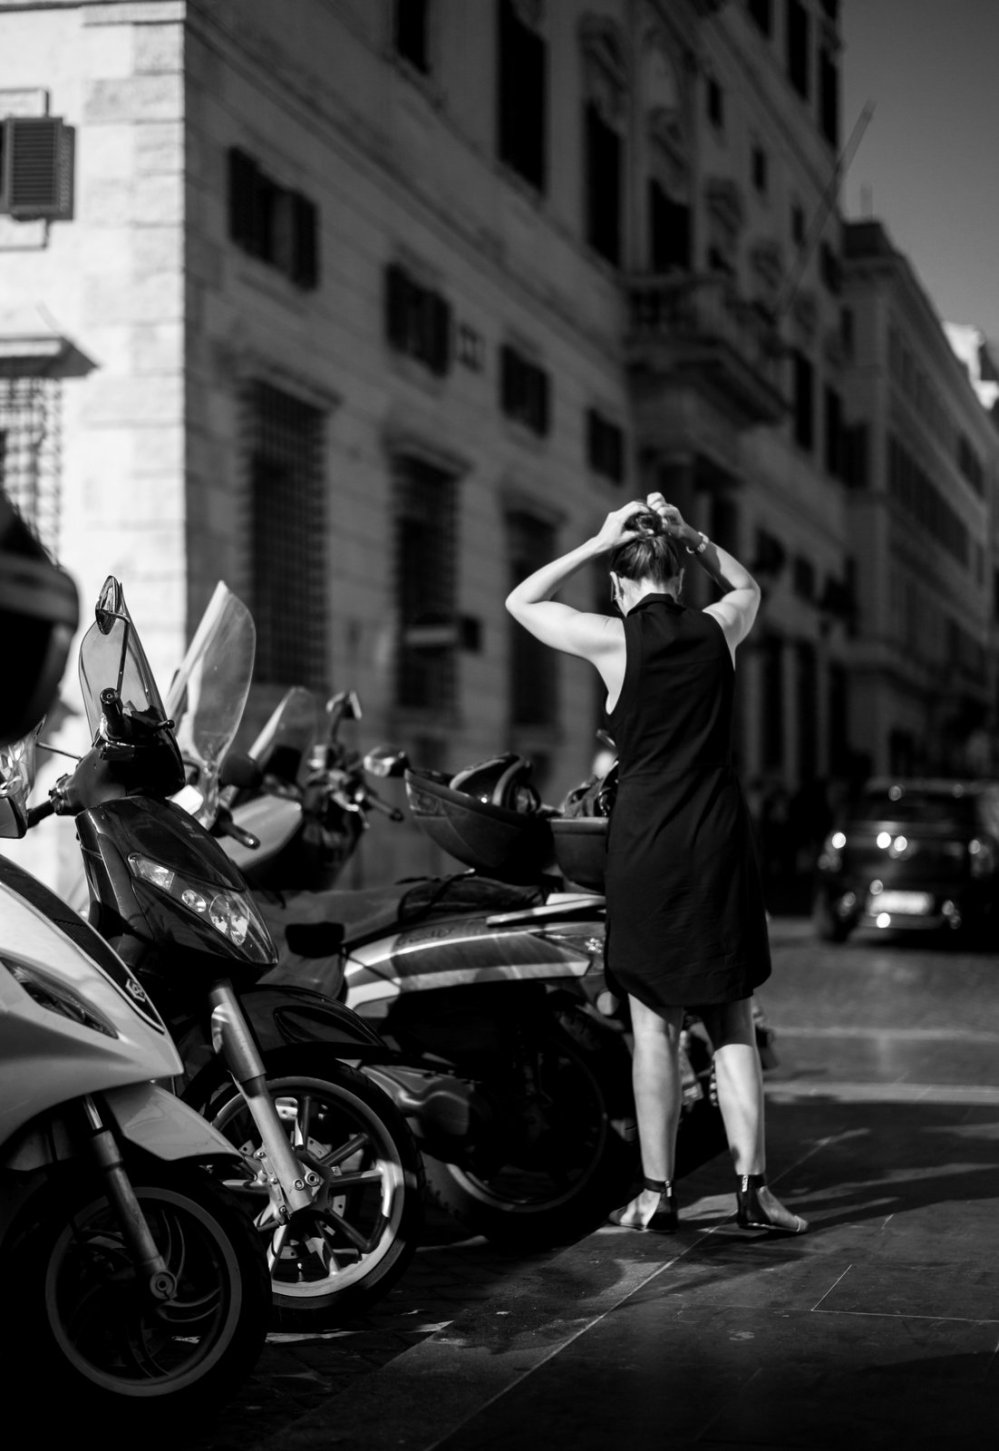 Woman in Rome. (C) Morten Albek - 2015. photo@mortenalbek.com www.mortenalbek.com